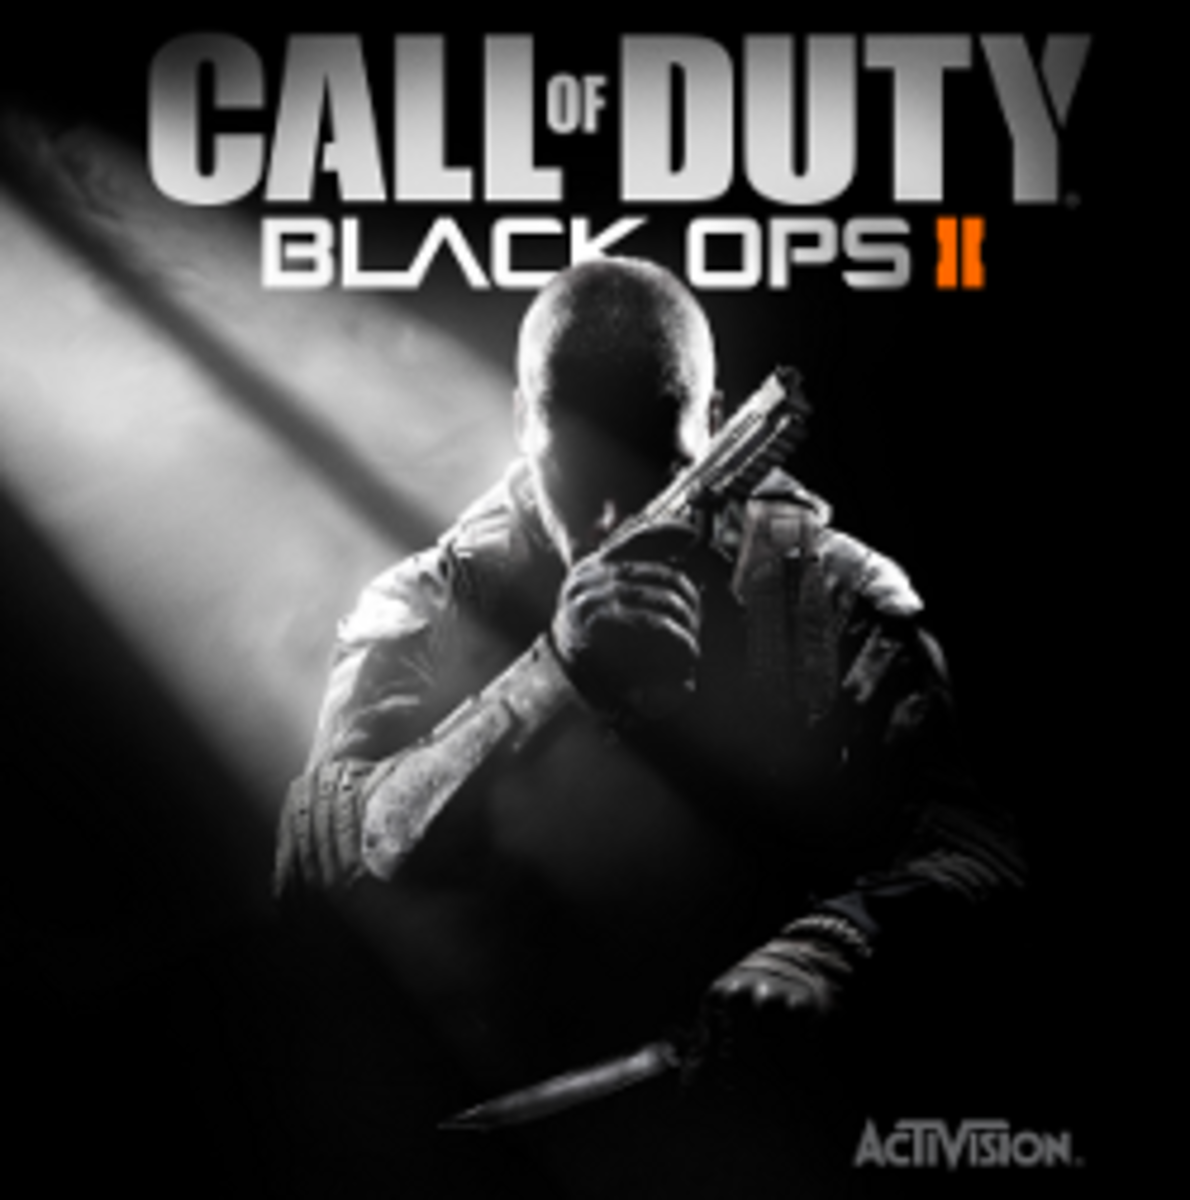 Call of Duty: Black Ops 2 - The